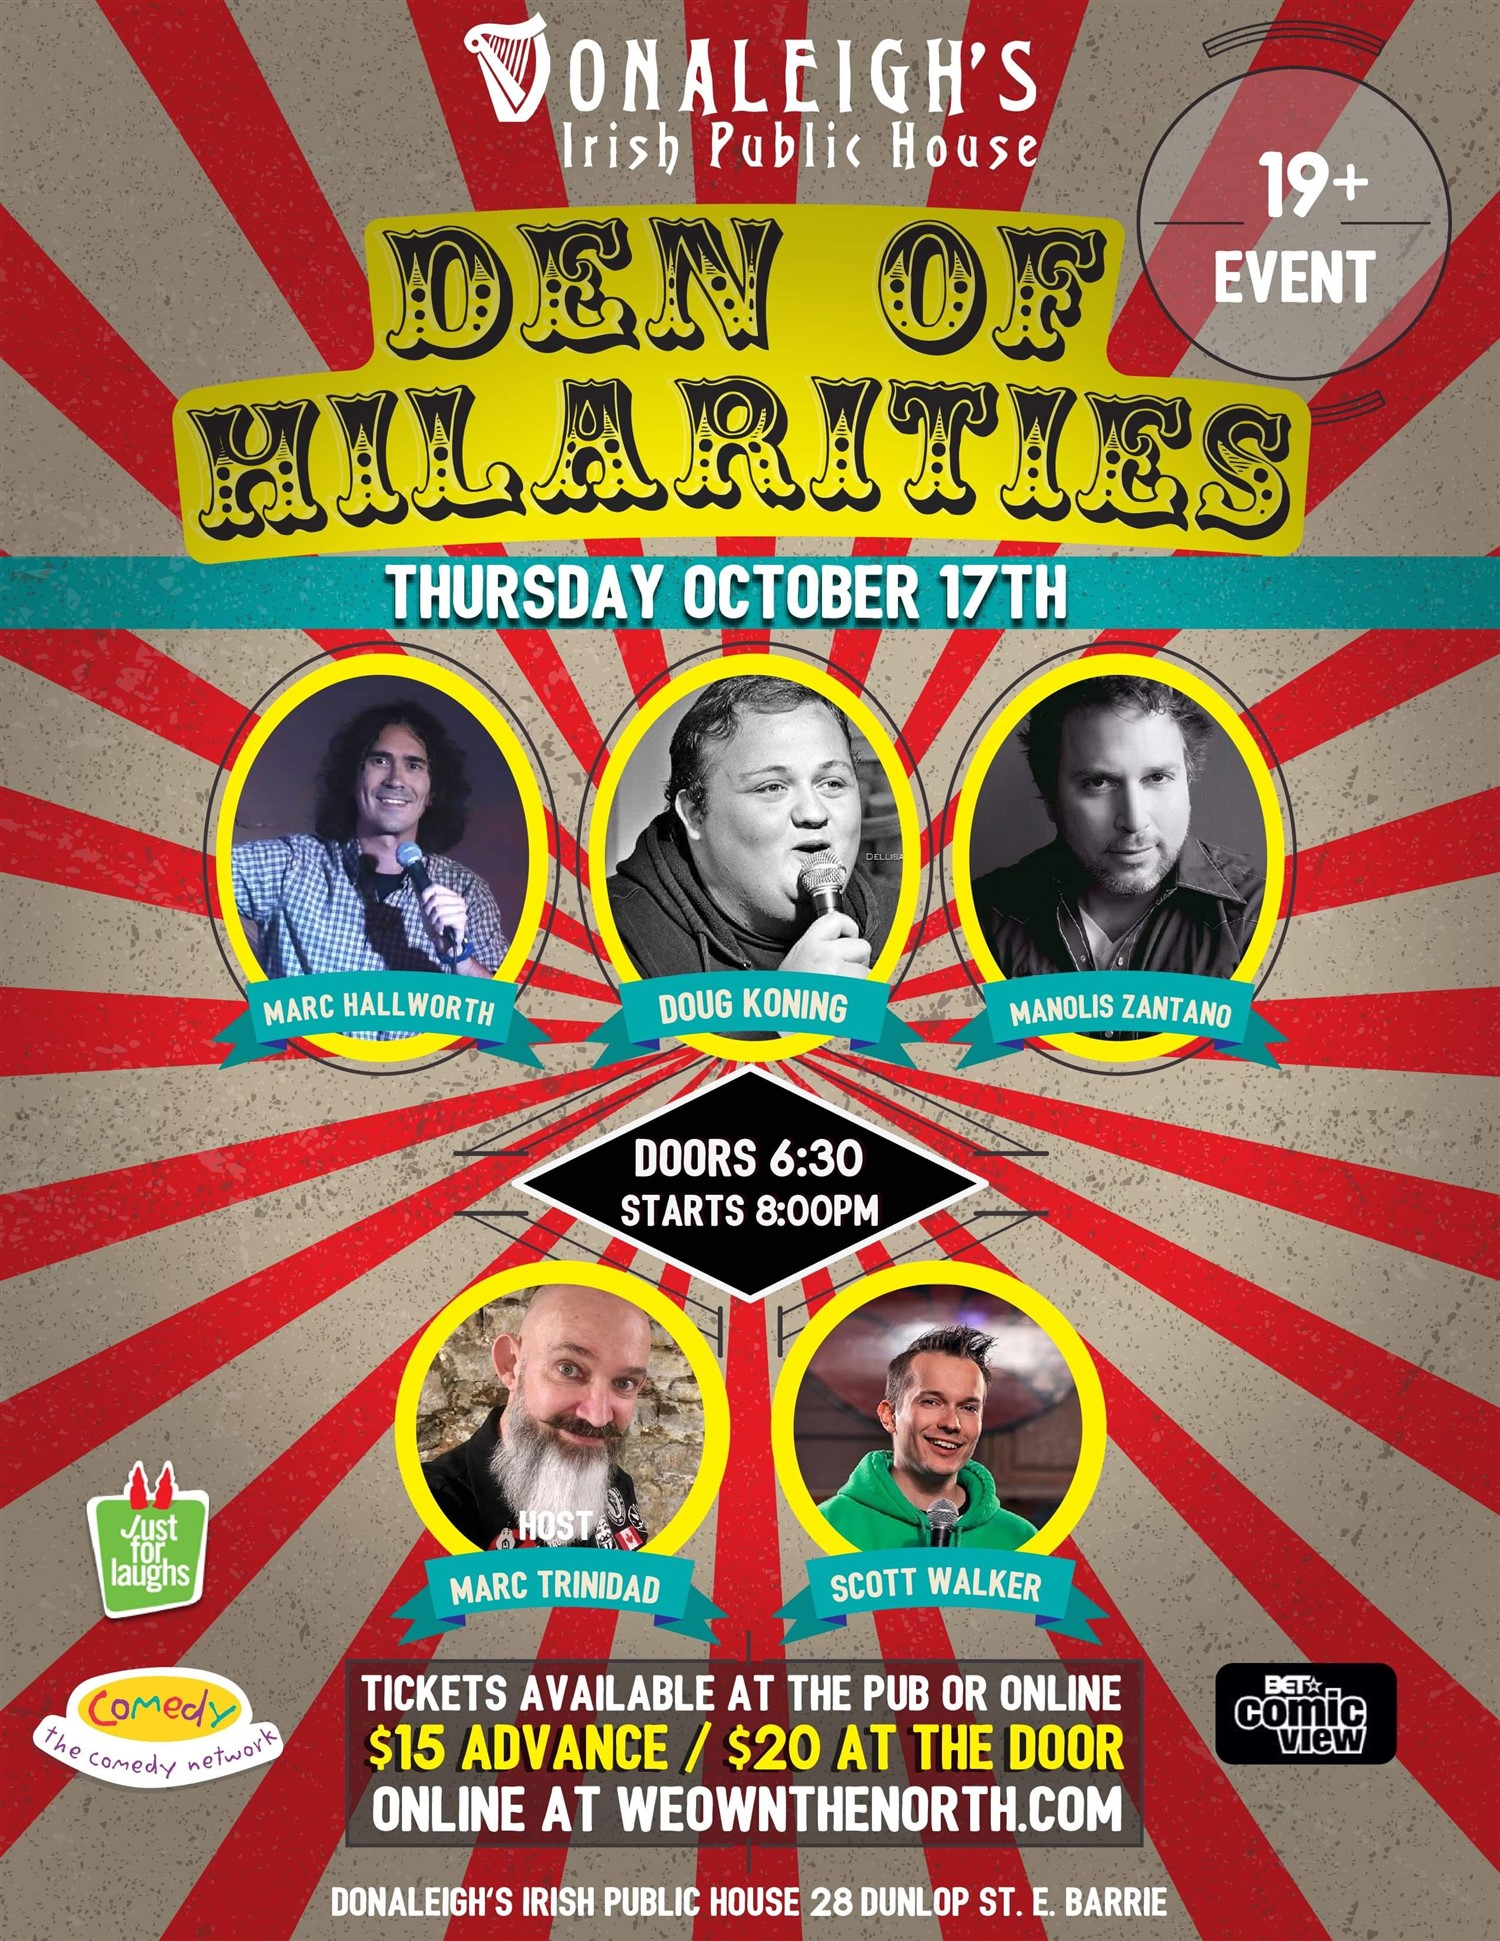 Donaleigh's Den of Hilarities Live Stand Up Comedy on Oct 17, 20:00@Donaleigh's Irish Pub - Buy tickets and Get information on Marc Trinidad Ent